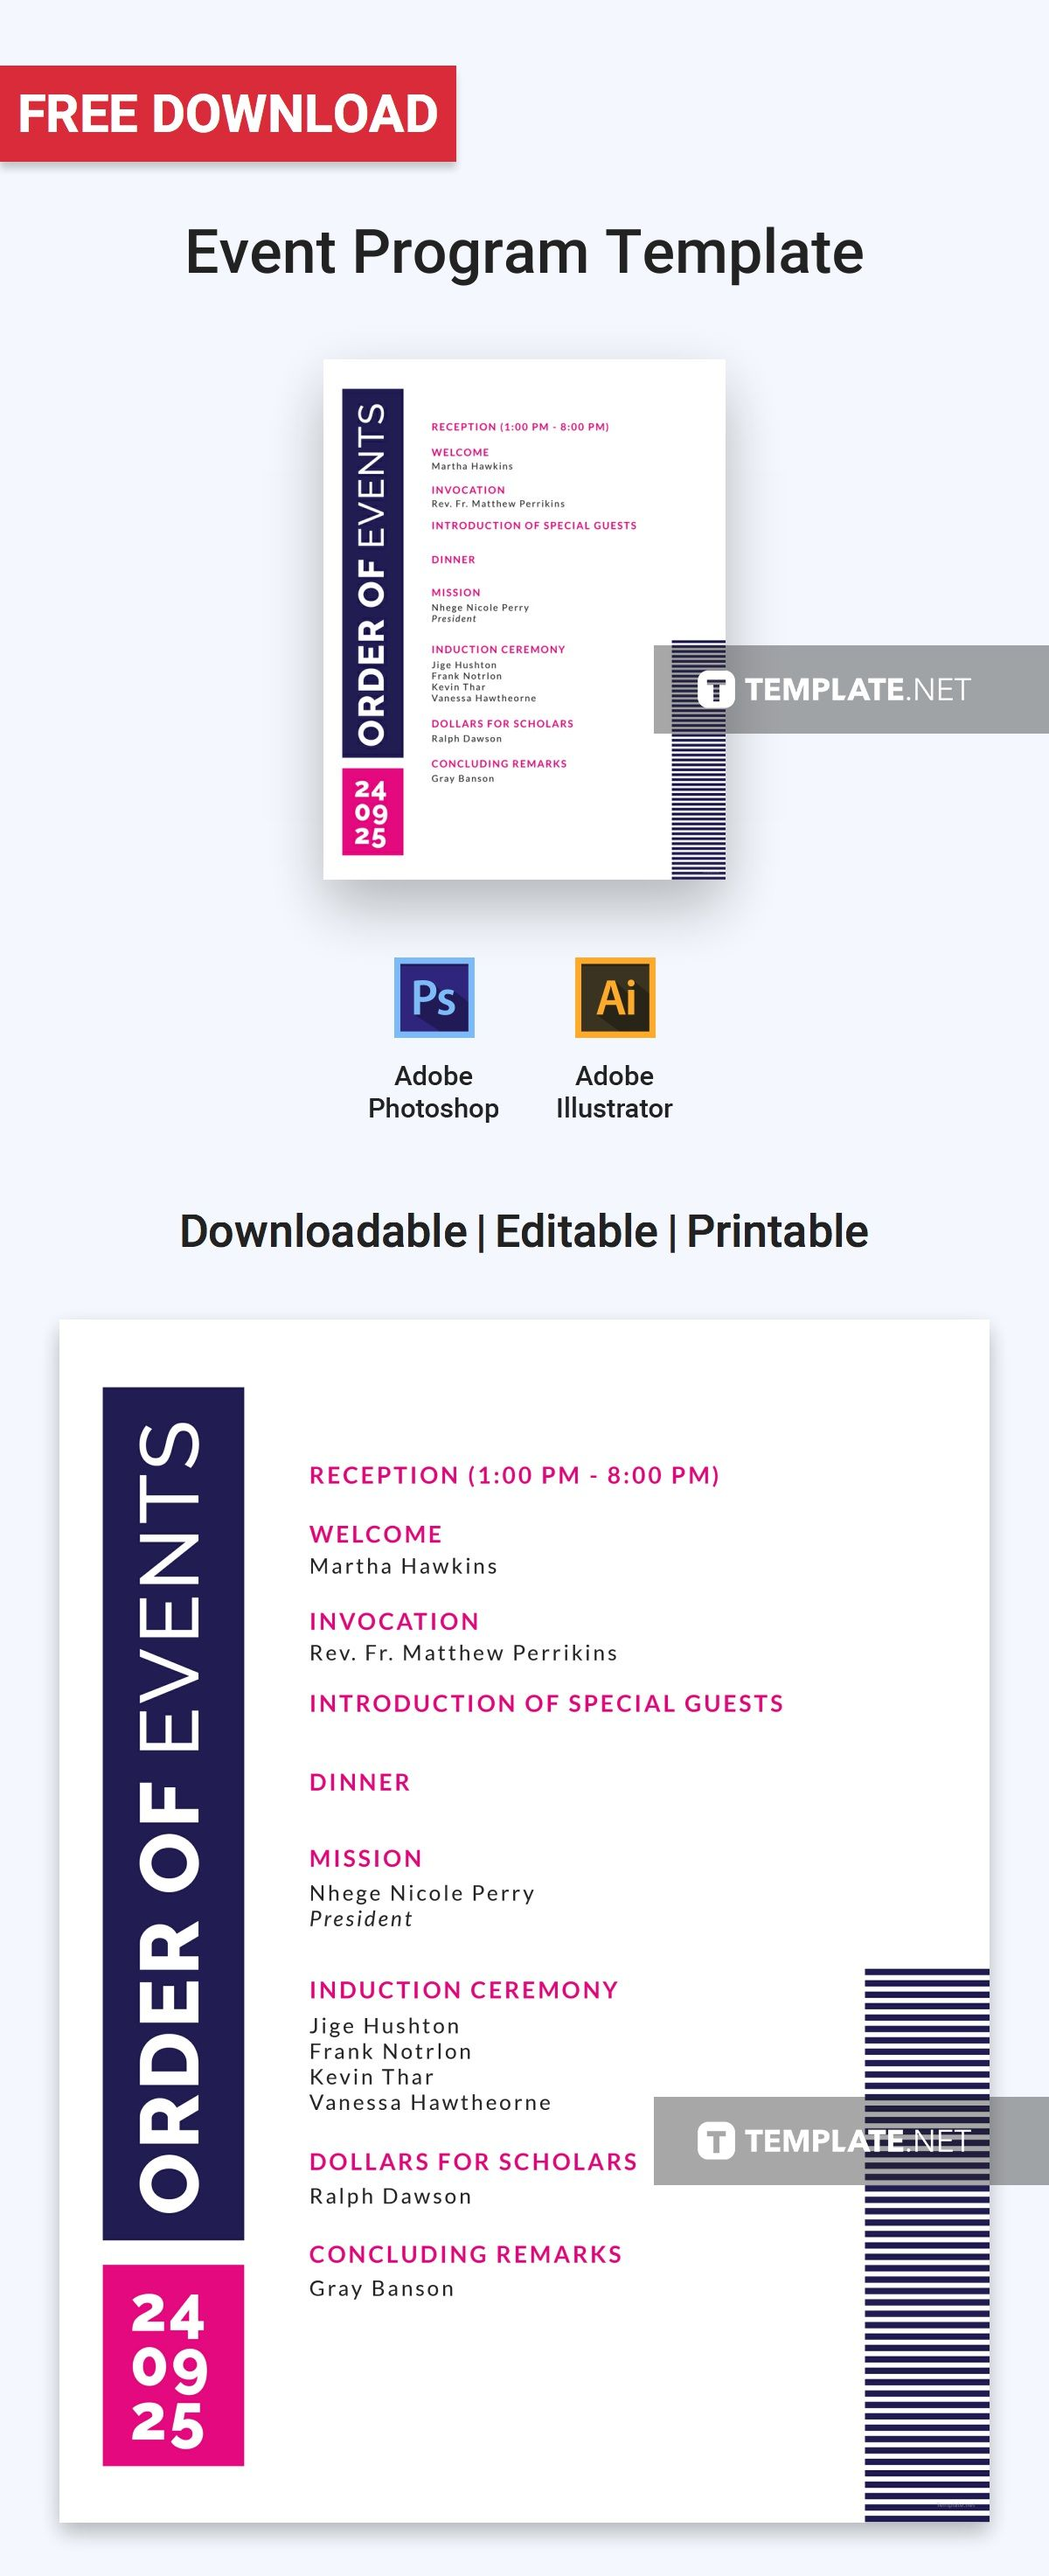 free event program invitation program templates designs 2019